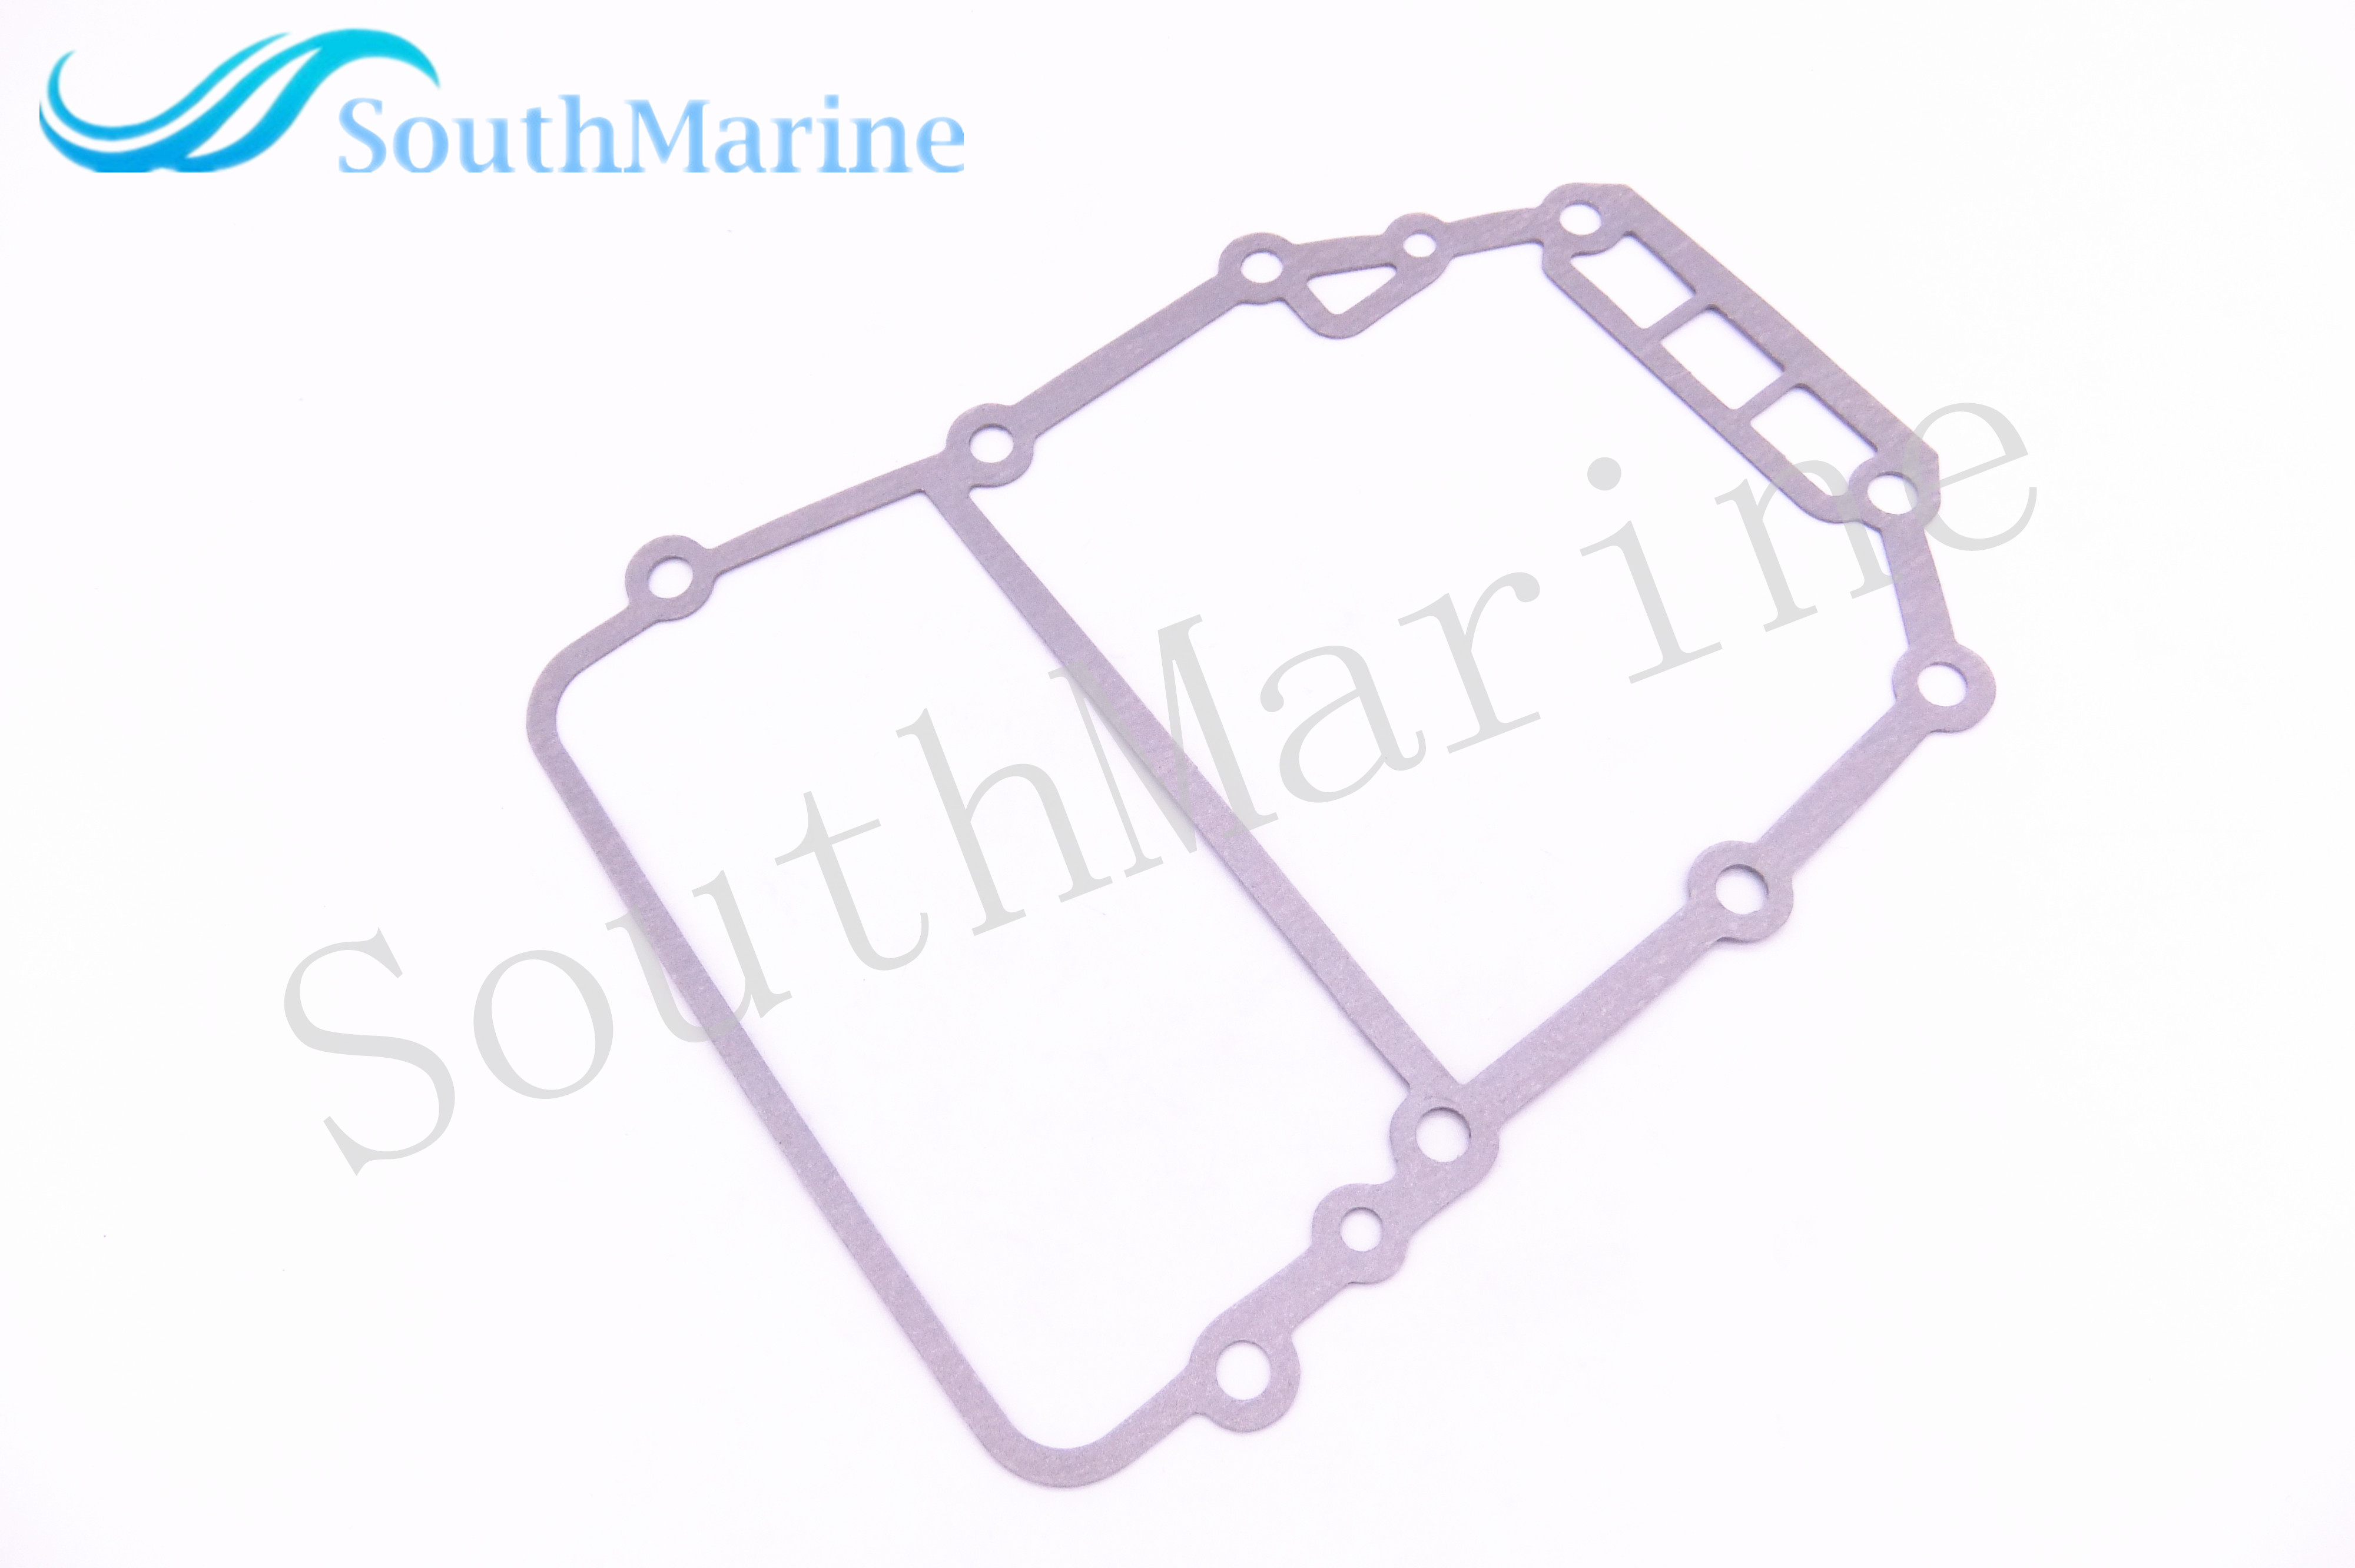 medium resolution of outboard engine 11434 94411 gasket under oil seal for suzuki 40hp dt40 dt40c boat motor in boat engine from automobiles motorcycles on aliexpress com